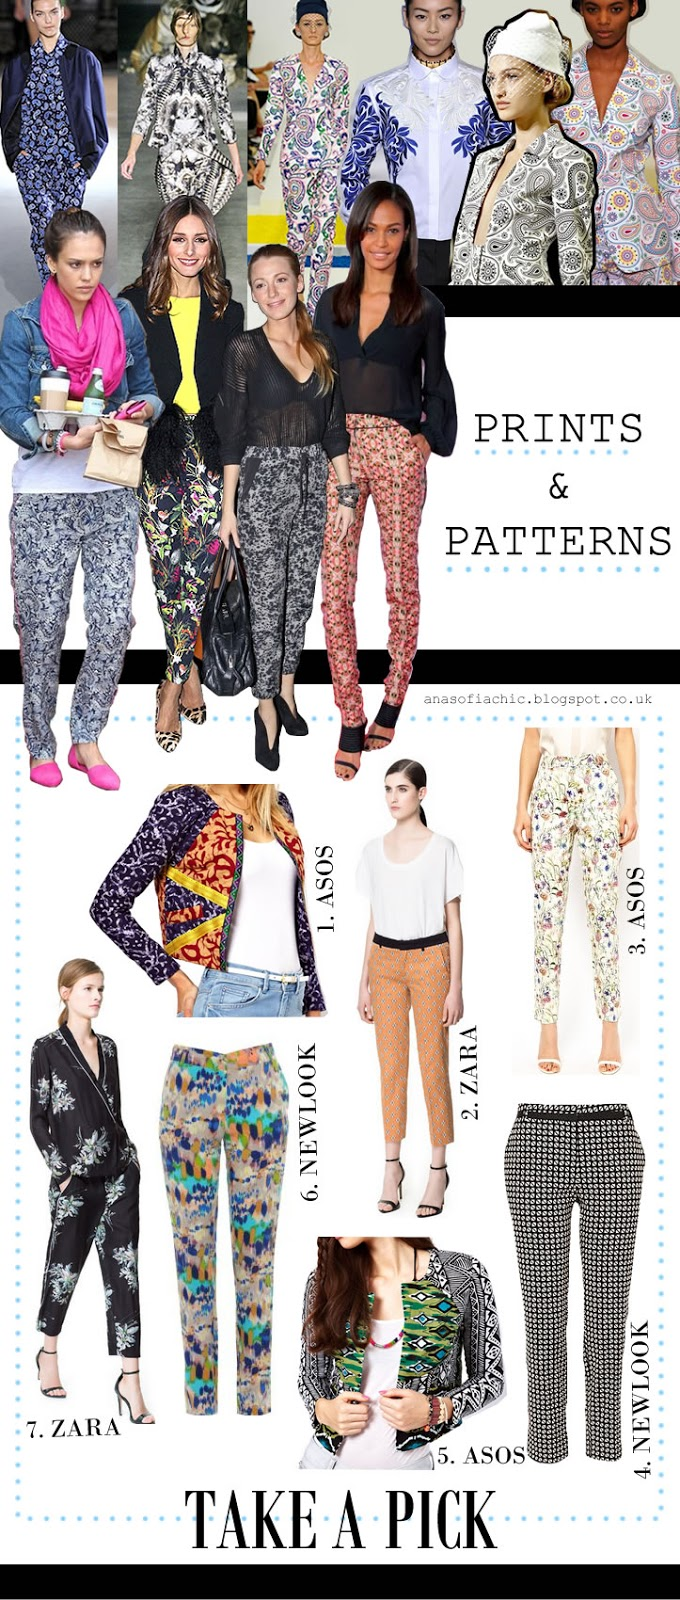 print, pattern, fashion, trend, fashion trend, picks